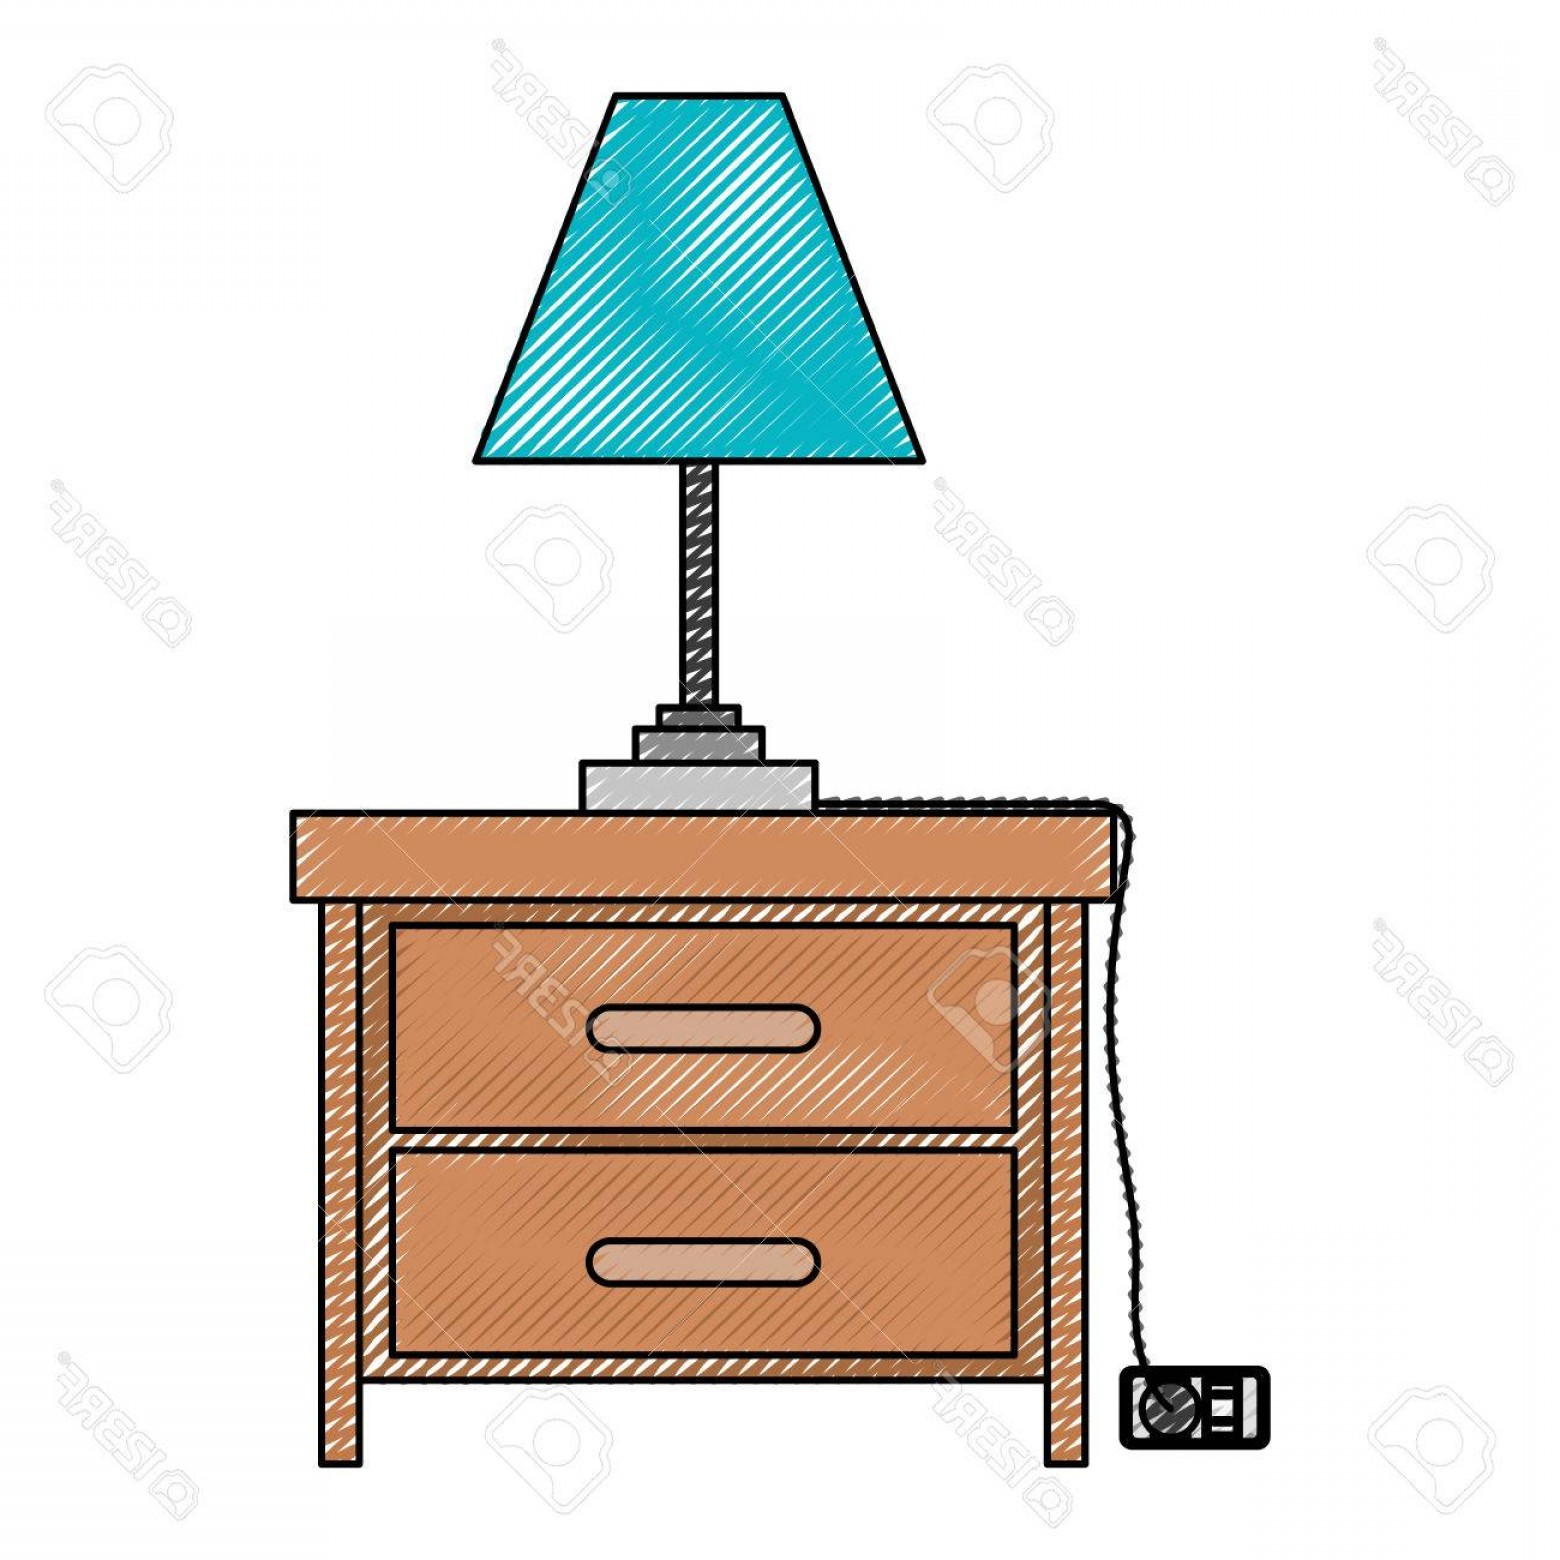 D Night Stanf Vector Graphic: Photostock Vector Nightstand With Lamp In Color Crayon Silhouette On White Background Vector Illustration